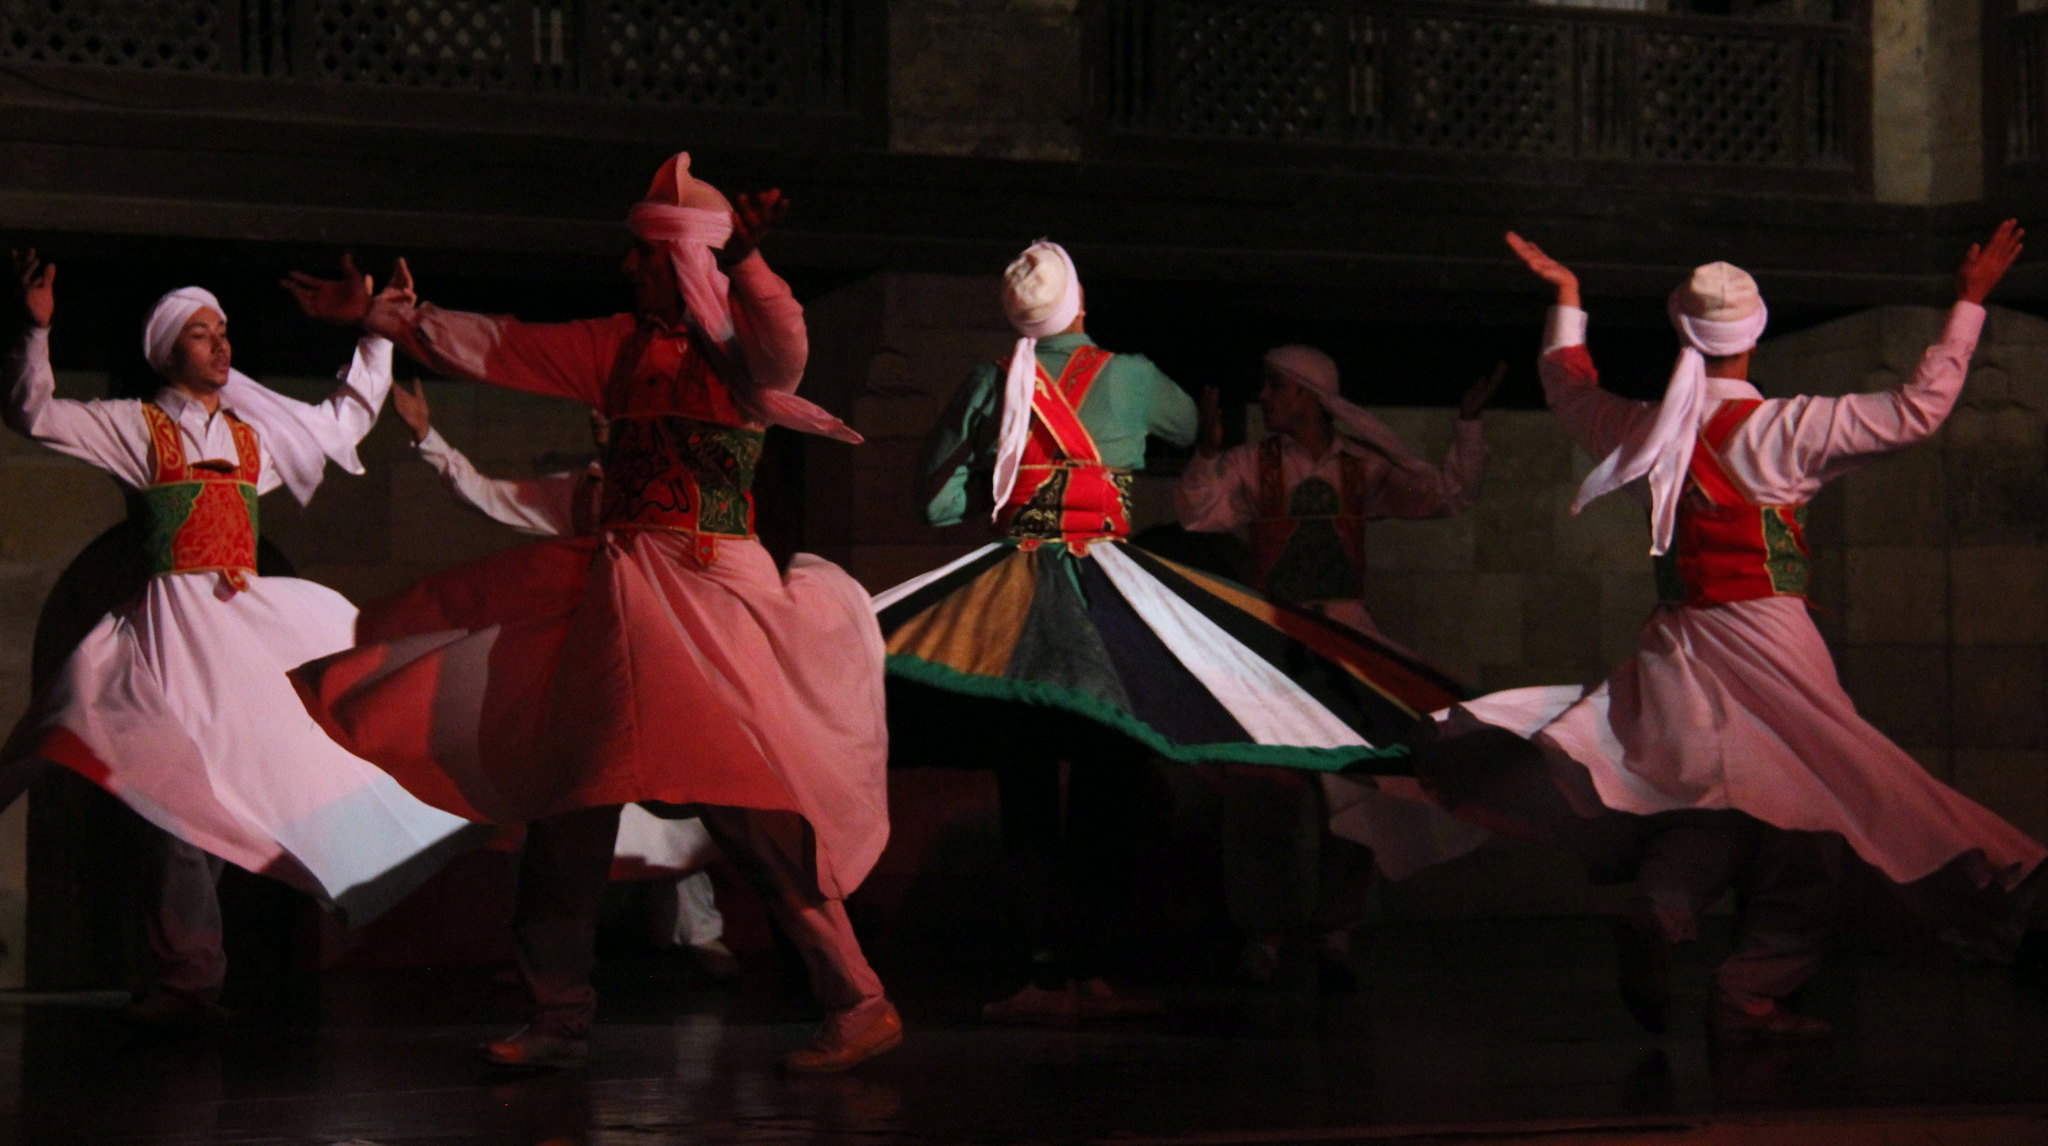 The whirling Tanoura dance can be seen at Nile cruises